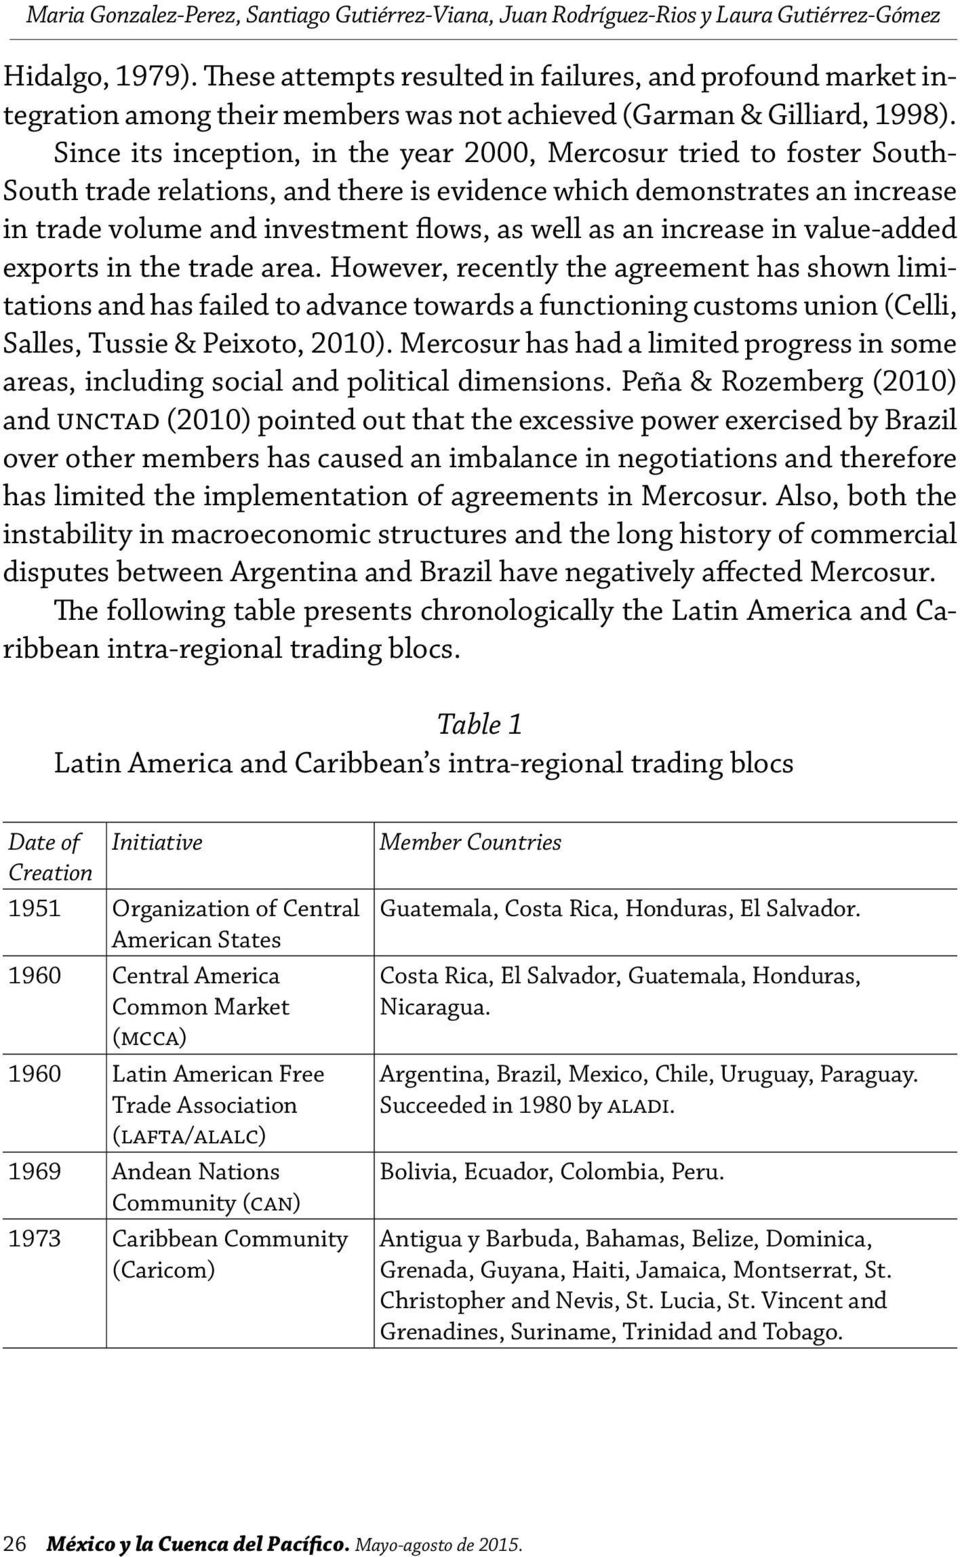 Since its inception, in the year 2000, Mercosur tried to foster South- South trade relations, and there is evidence which demonstrates an increase in trade volume and investment flows, as well as an